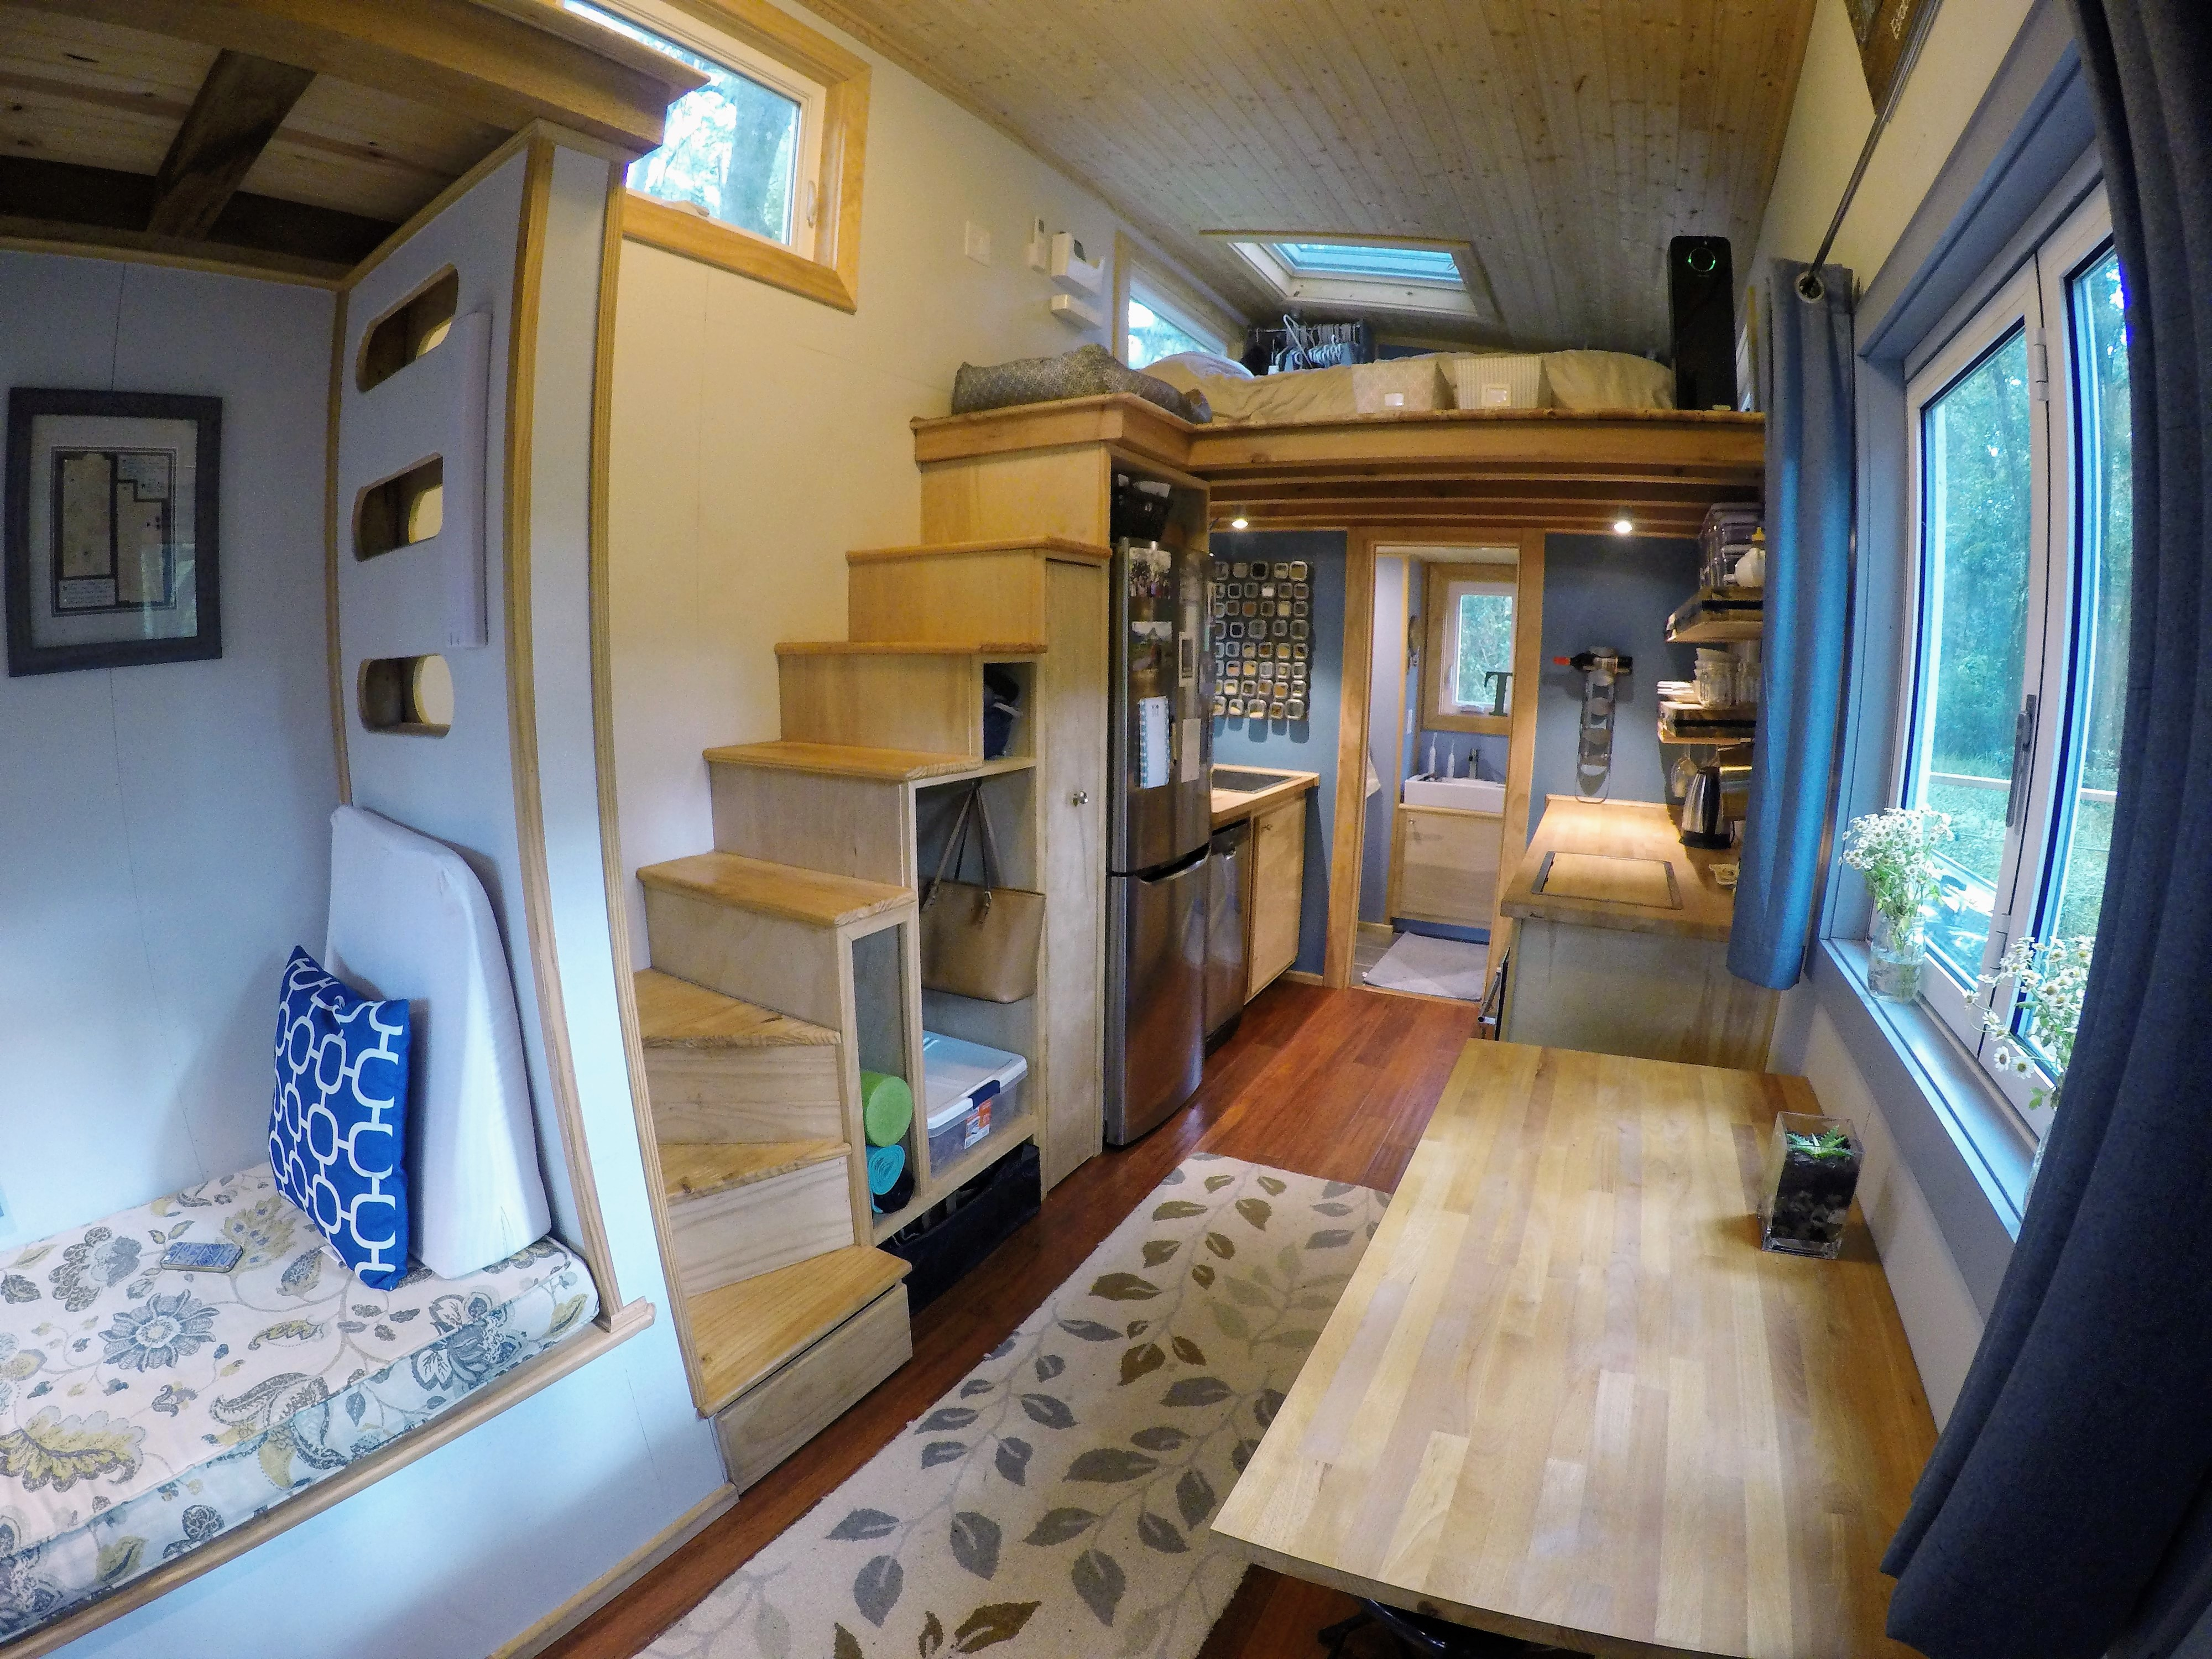 Austin U0026 Heidiu0027s Tiny House Creates Contentment